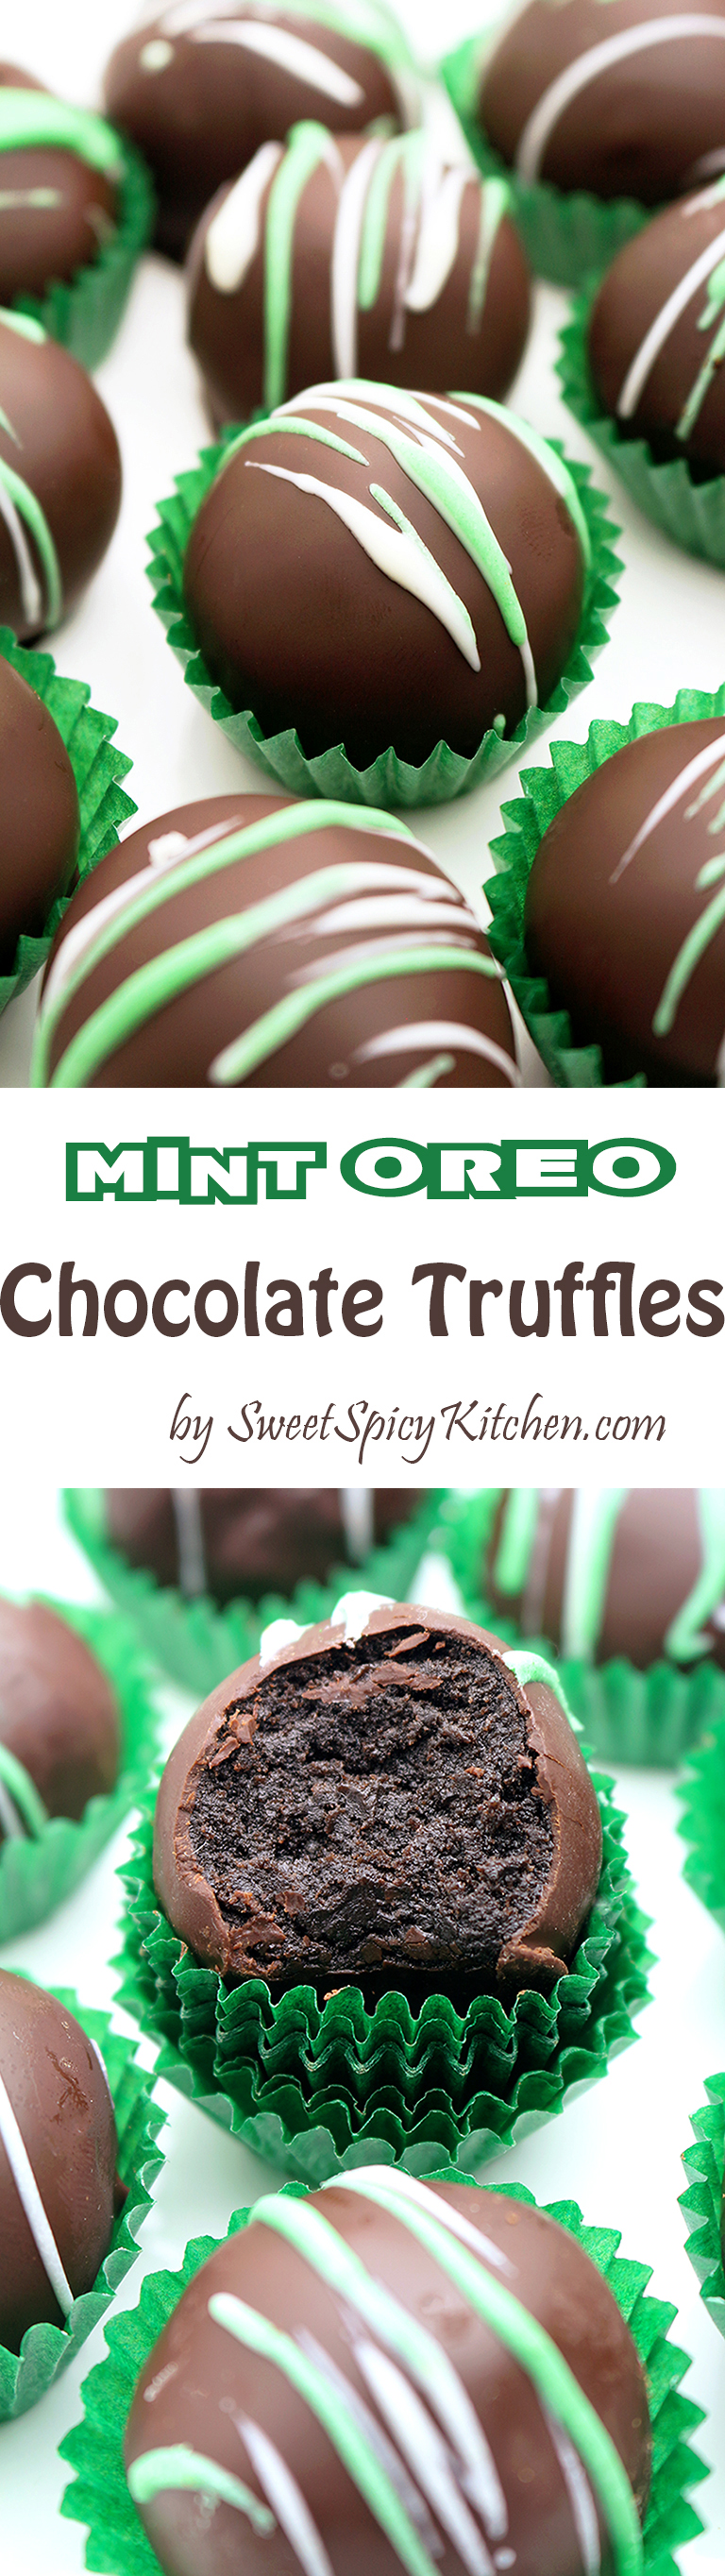 Mint Oreo Chocolate Truffles are simple, quick and so delicious, just perfect for St Patrick´s Day.